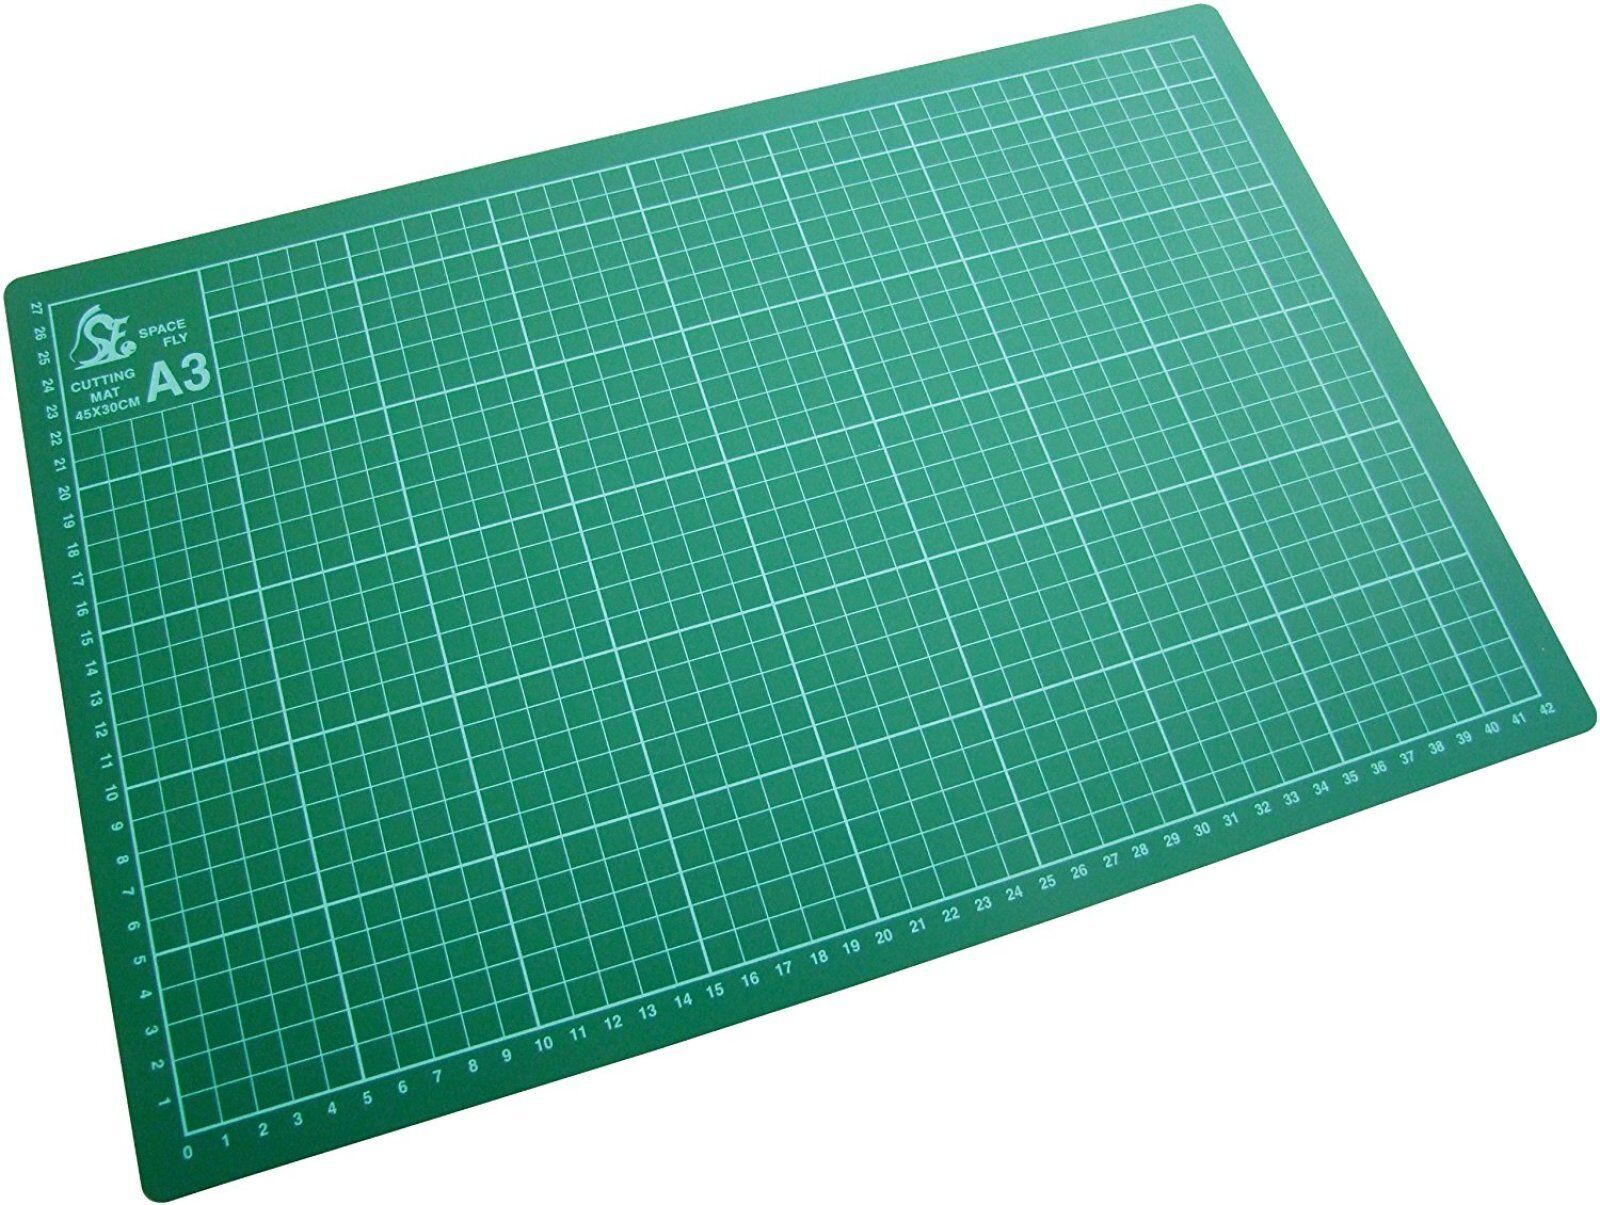 Details about A3 Cutting Mat Large Table Top Protector Safe Cutting Board  Art Craft Card Paper